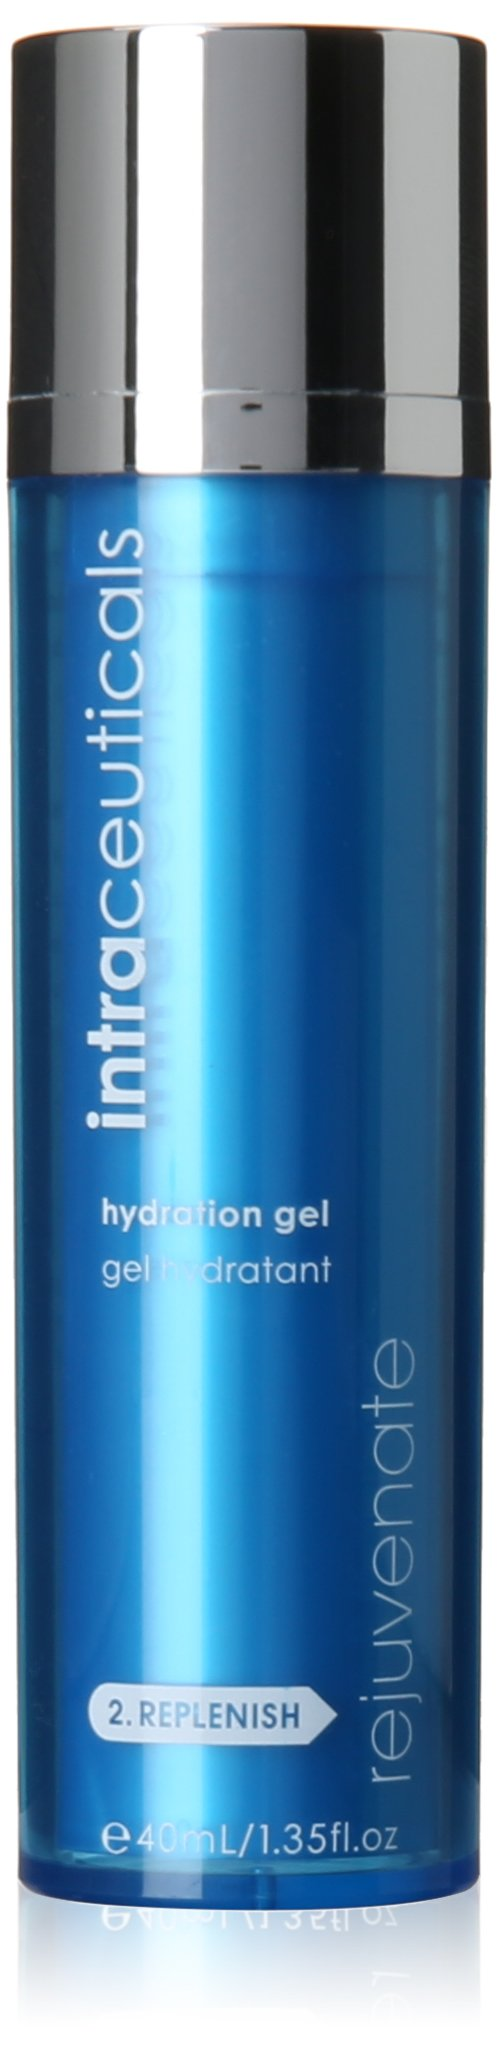 Intraceuticals Rejuvenate Hydration Gel, 1.35 Fluid Ounce